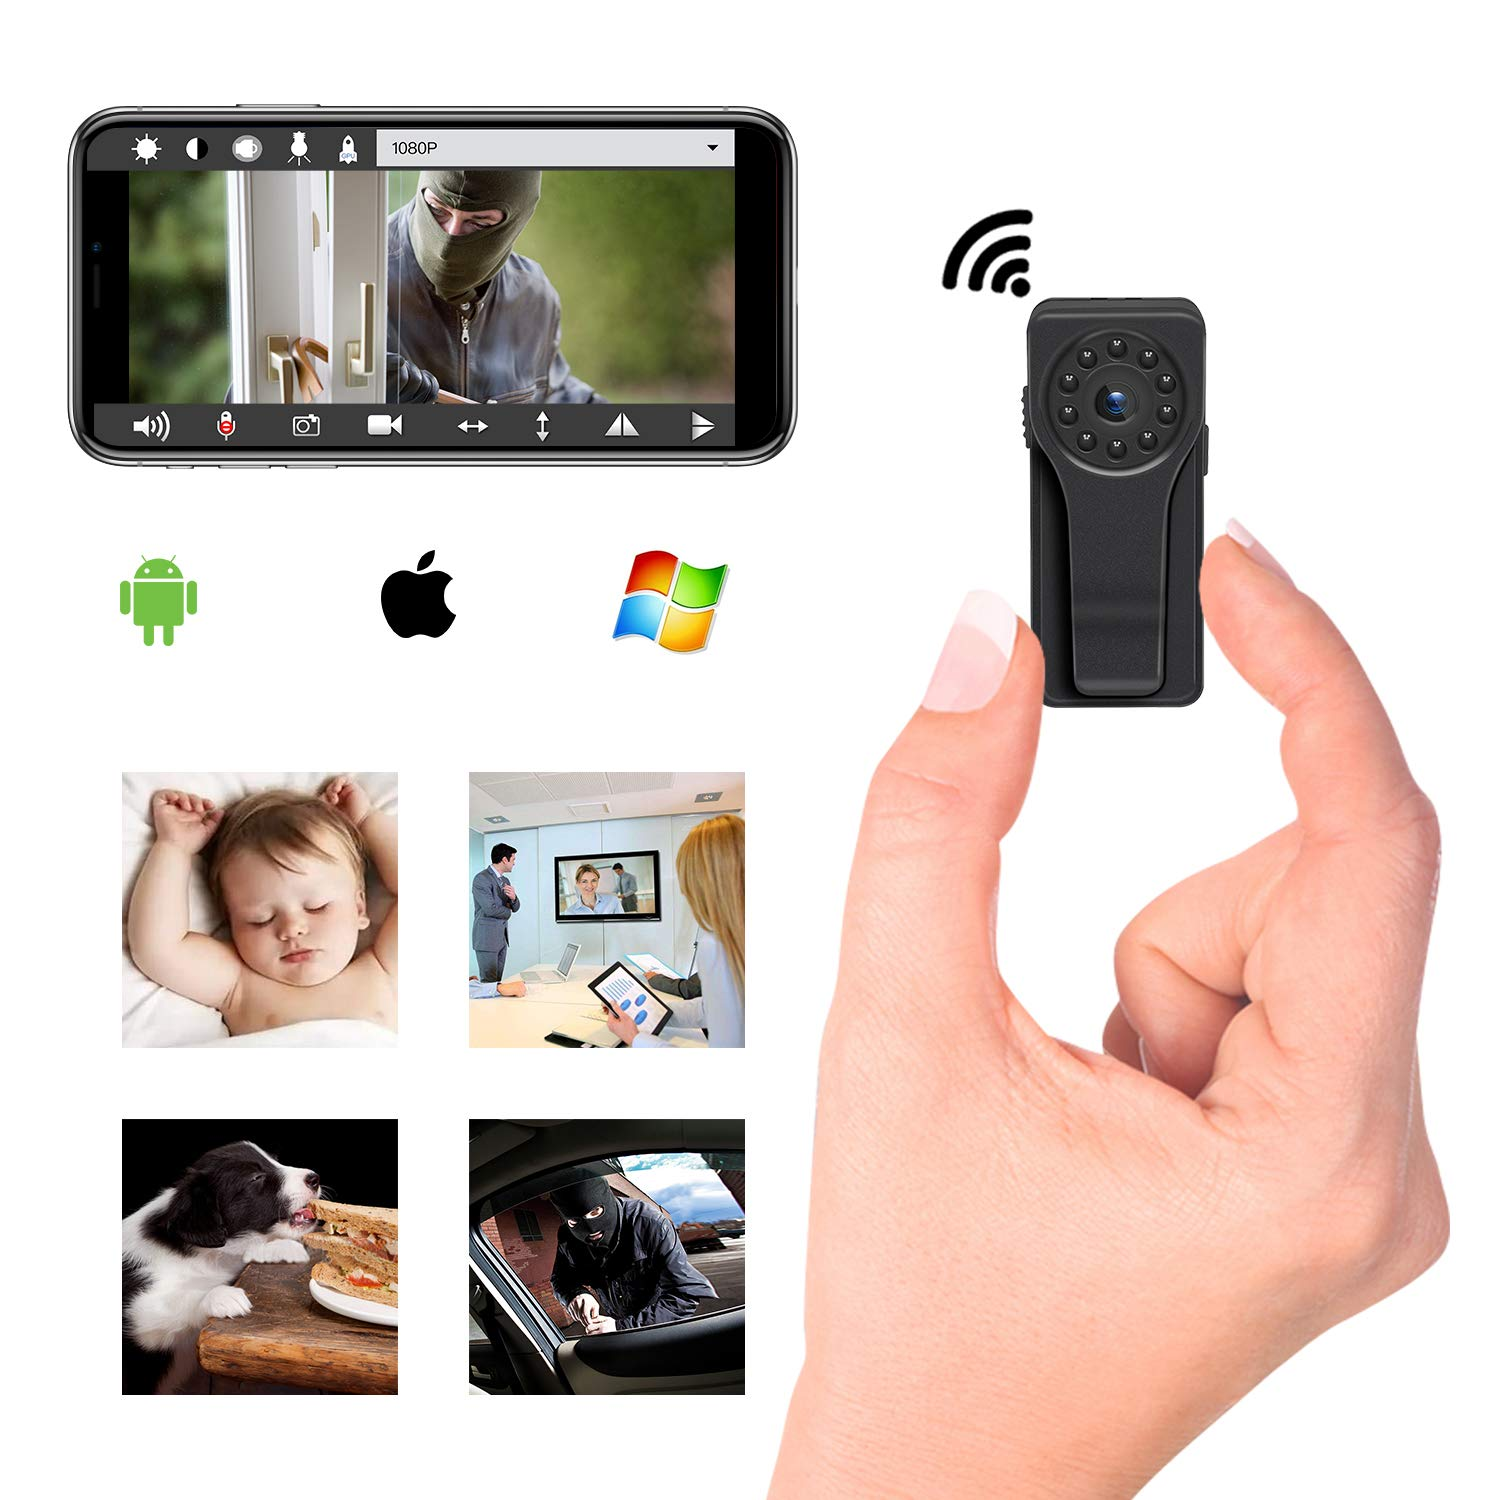 Mini Hidden Spy Camera, Ruidla WiFi Camera Body Camera Night Vision Motion Detection 1080P HD Security Monitoring Nanny Cam For Baby Home, 170 Degree Wide View Angle, Fit for Indoor & Outdoor